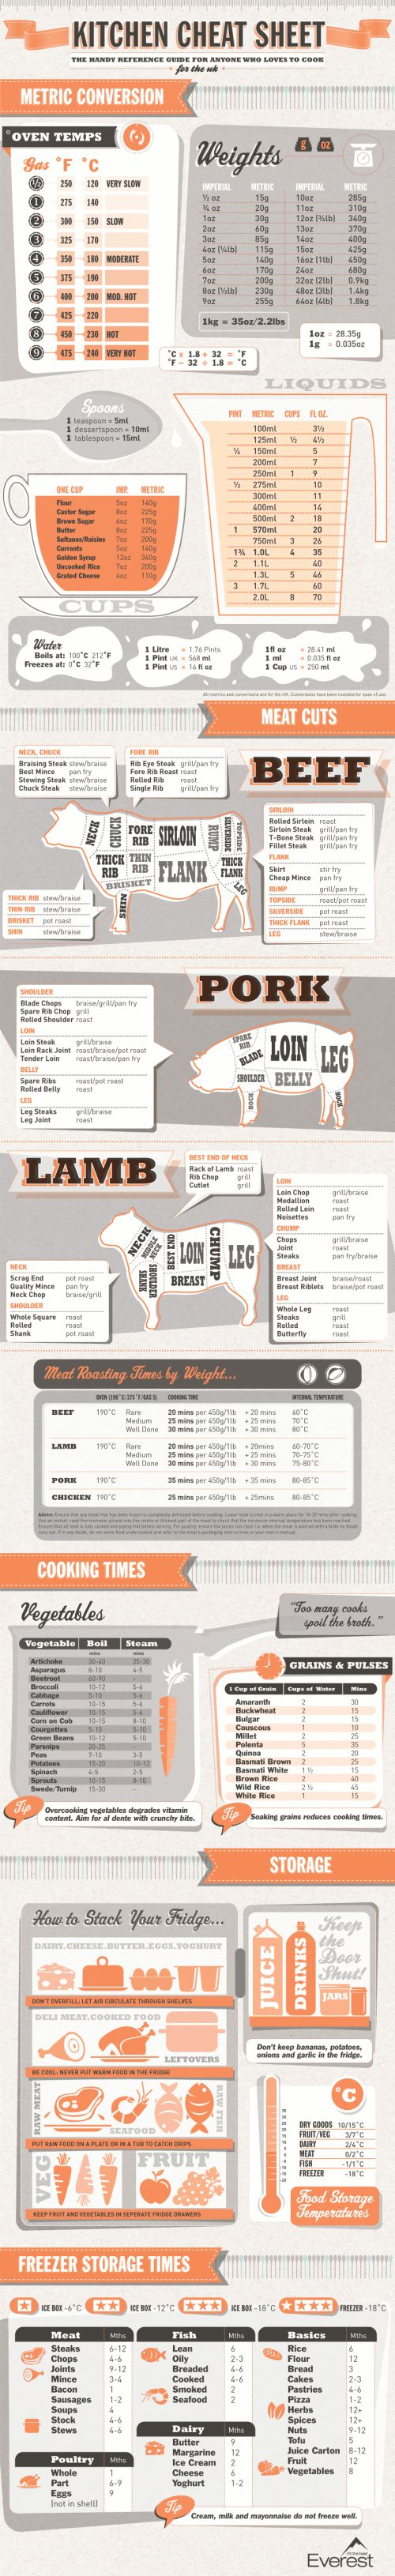 Loving this Kitchen Cheat Sheet Infographic - Pretty much all the basics you'll need to get cooking our recipes.